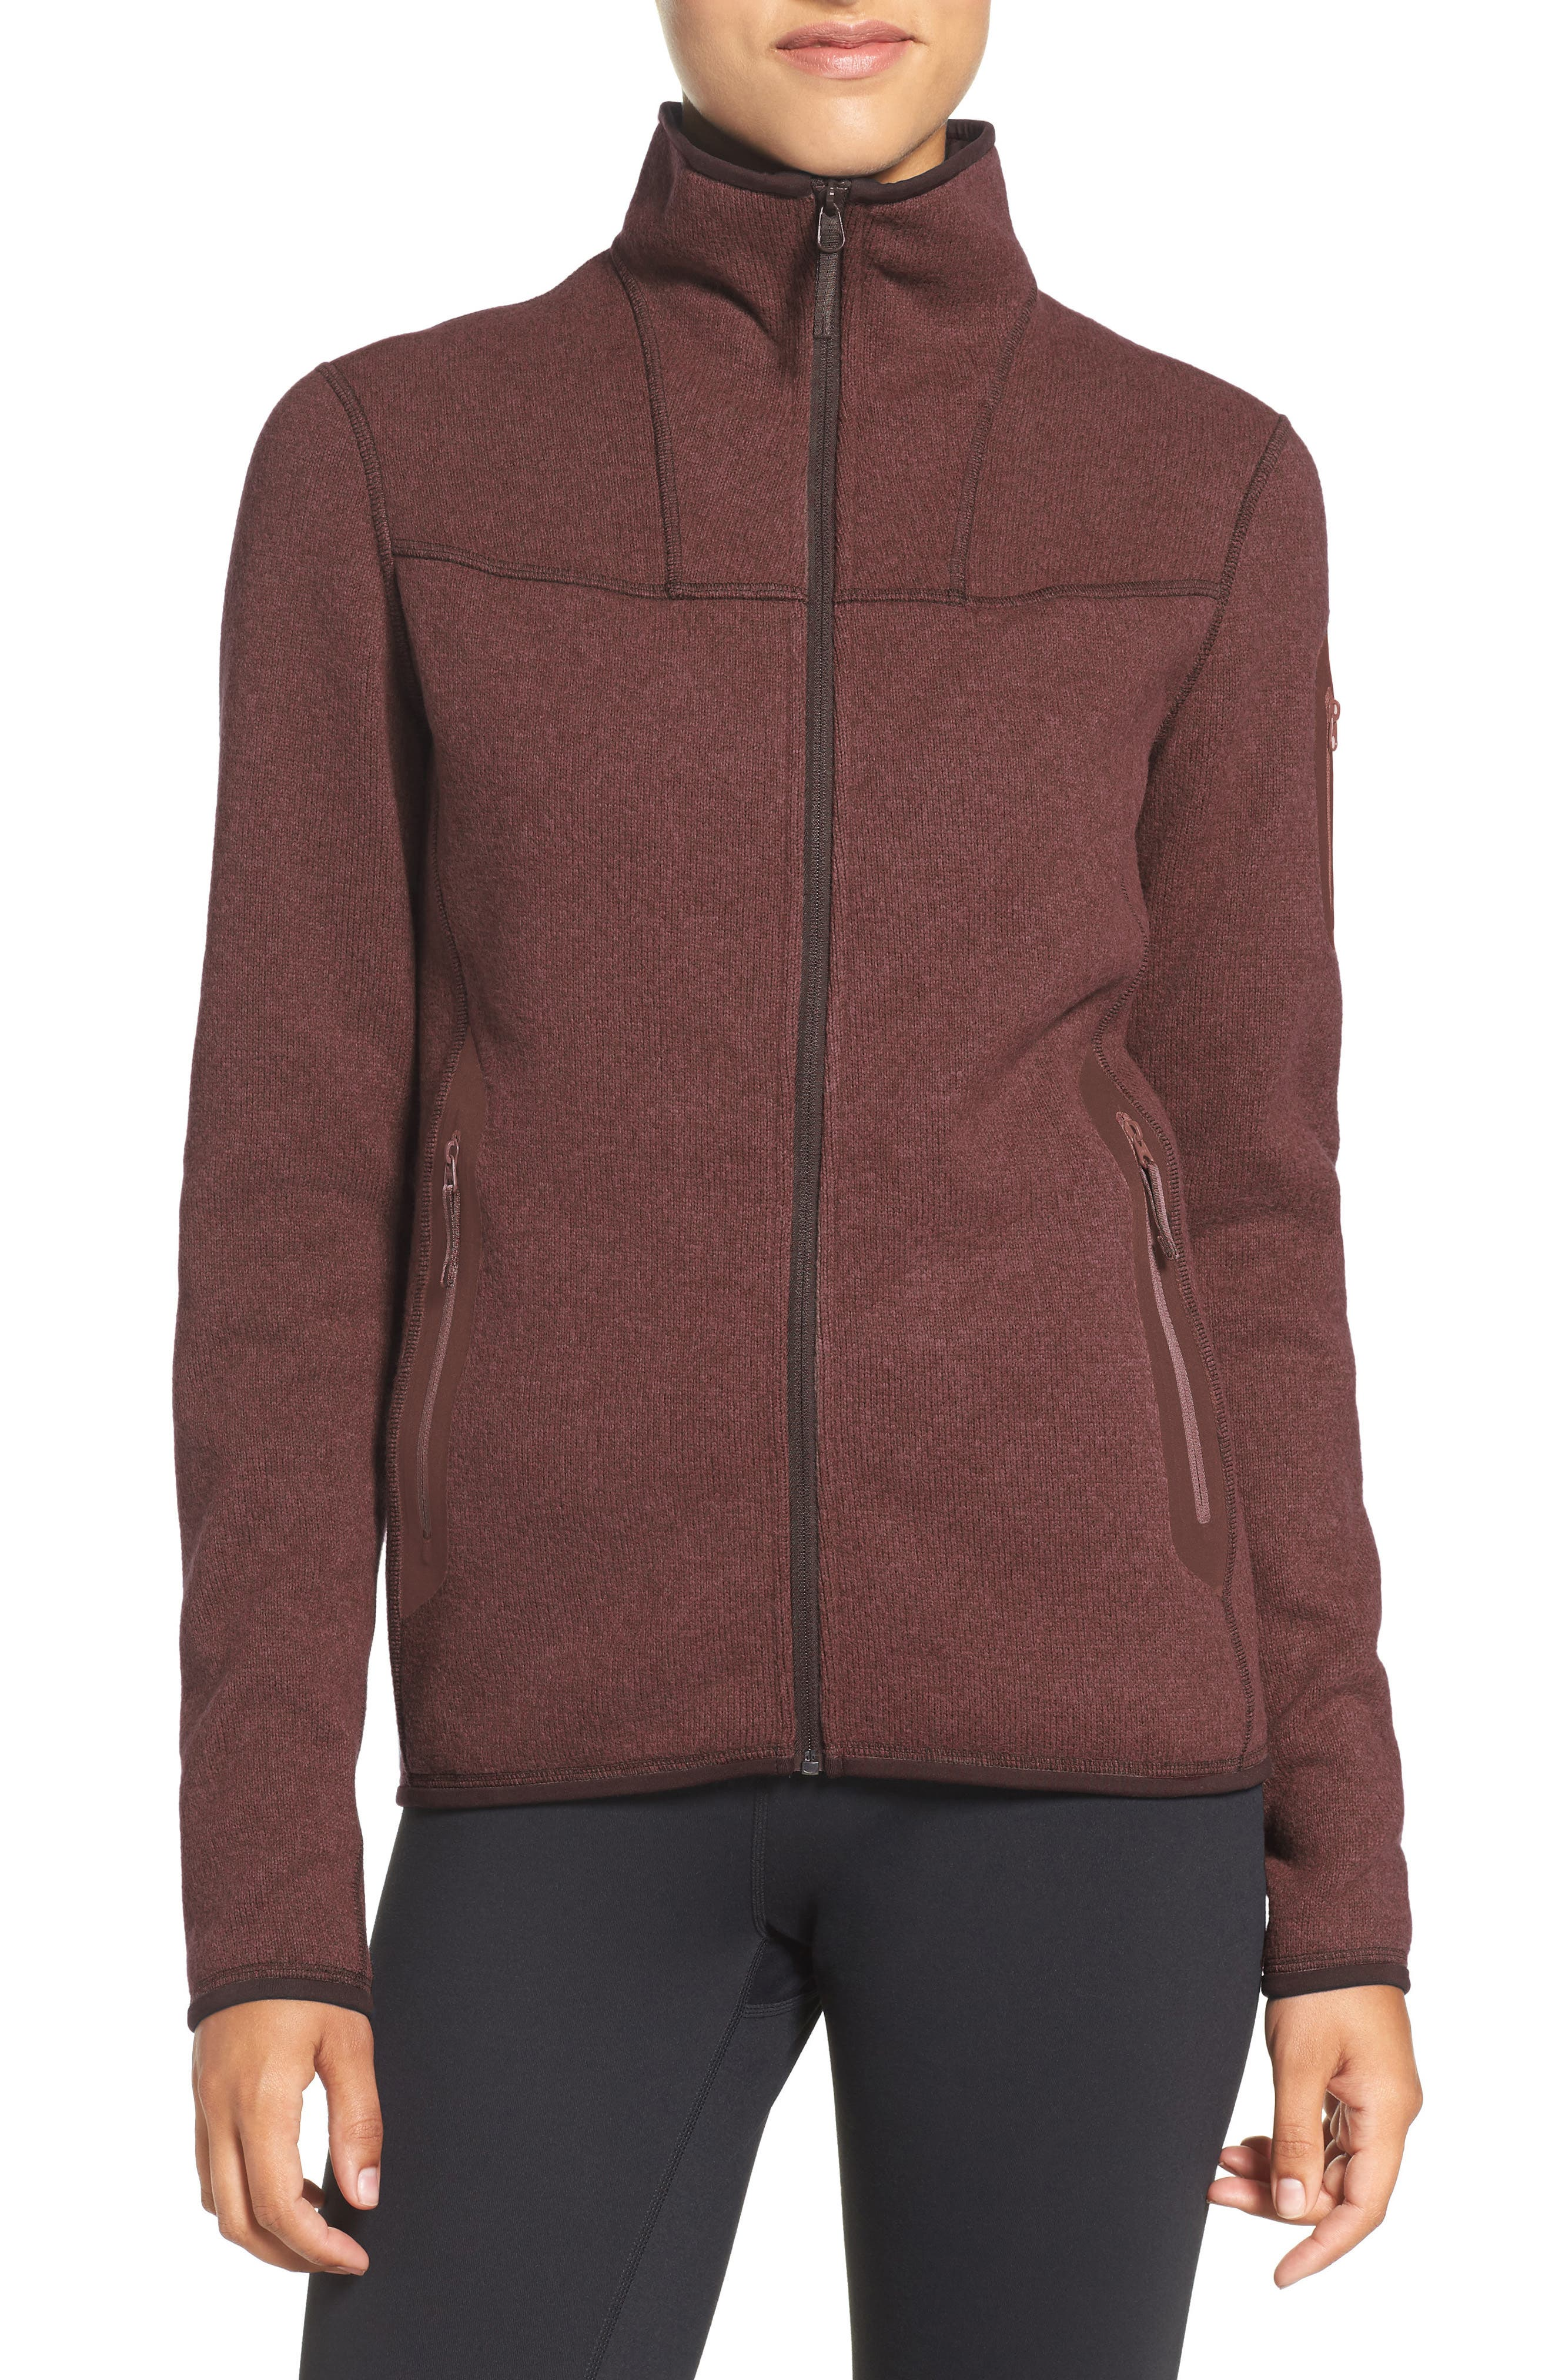 Arc'teryx Covert Cardigan Fleece Jacket